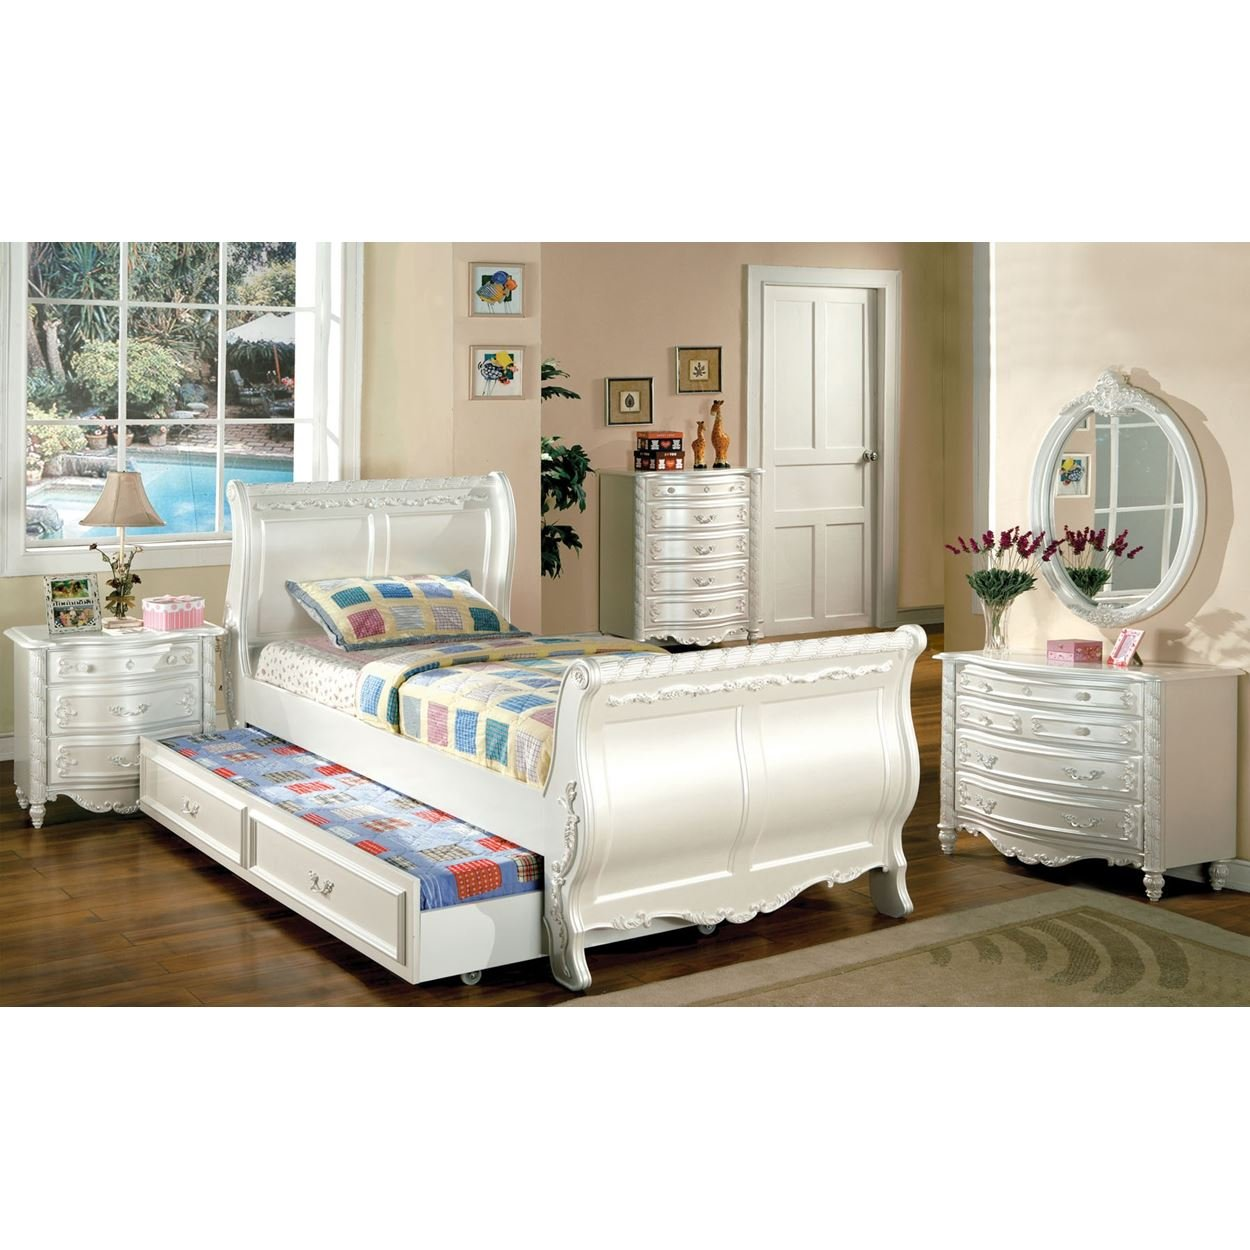 Addison Girls 4 Piece Sleigh Full Bed, 1 Nightstand, Dresser, Mirror in Pearl White by FA Furnishing